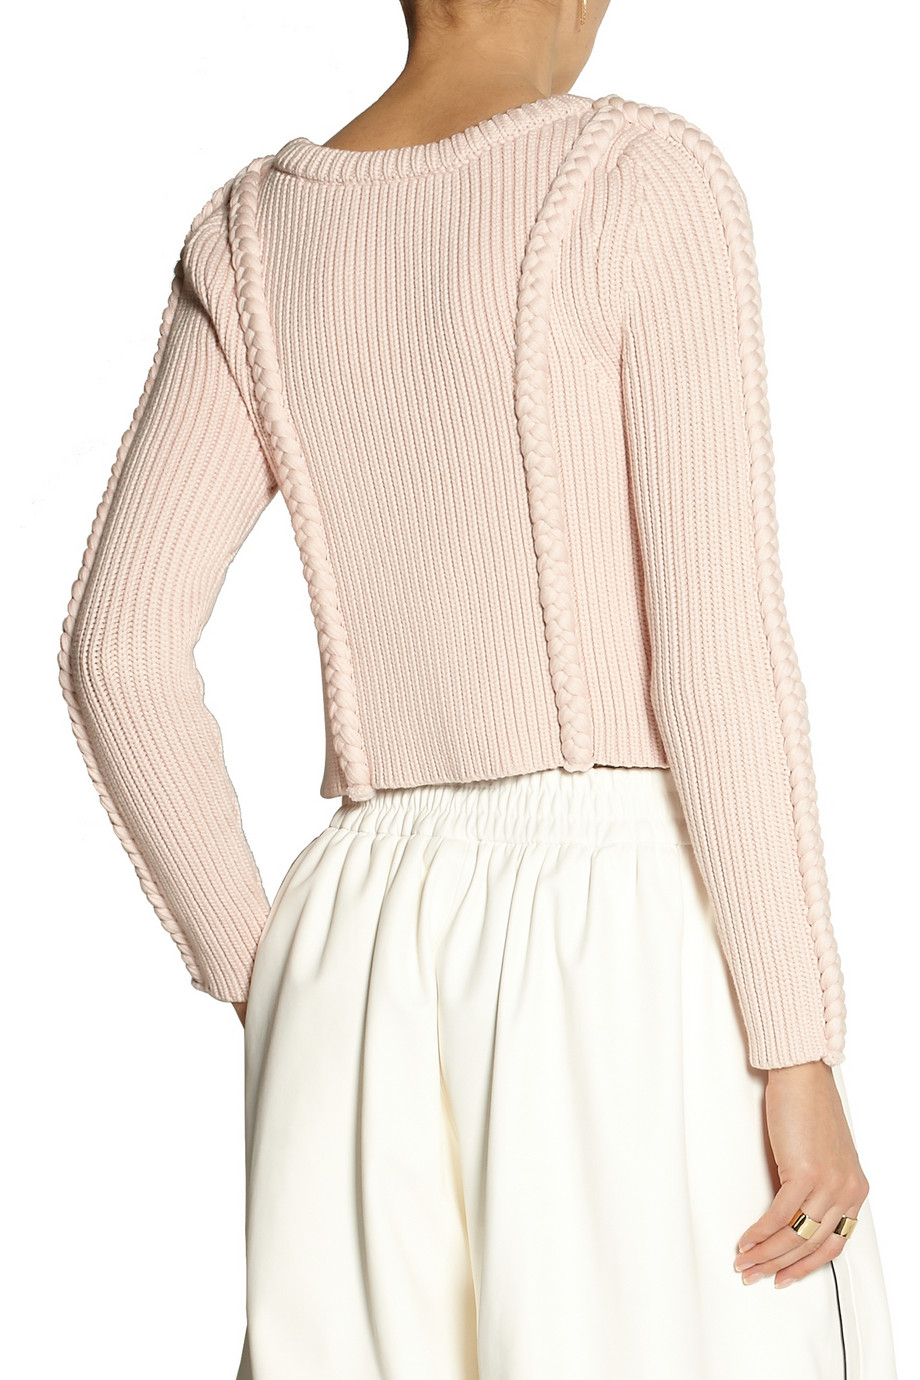 Adam lippes Cropped Chunky-Knit Cotton-Blend Sweater in Natural | Lyst